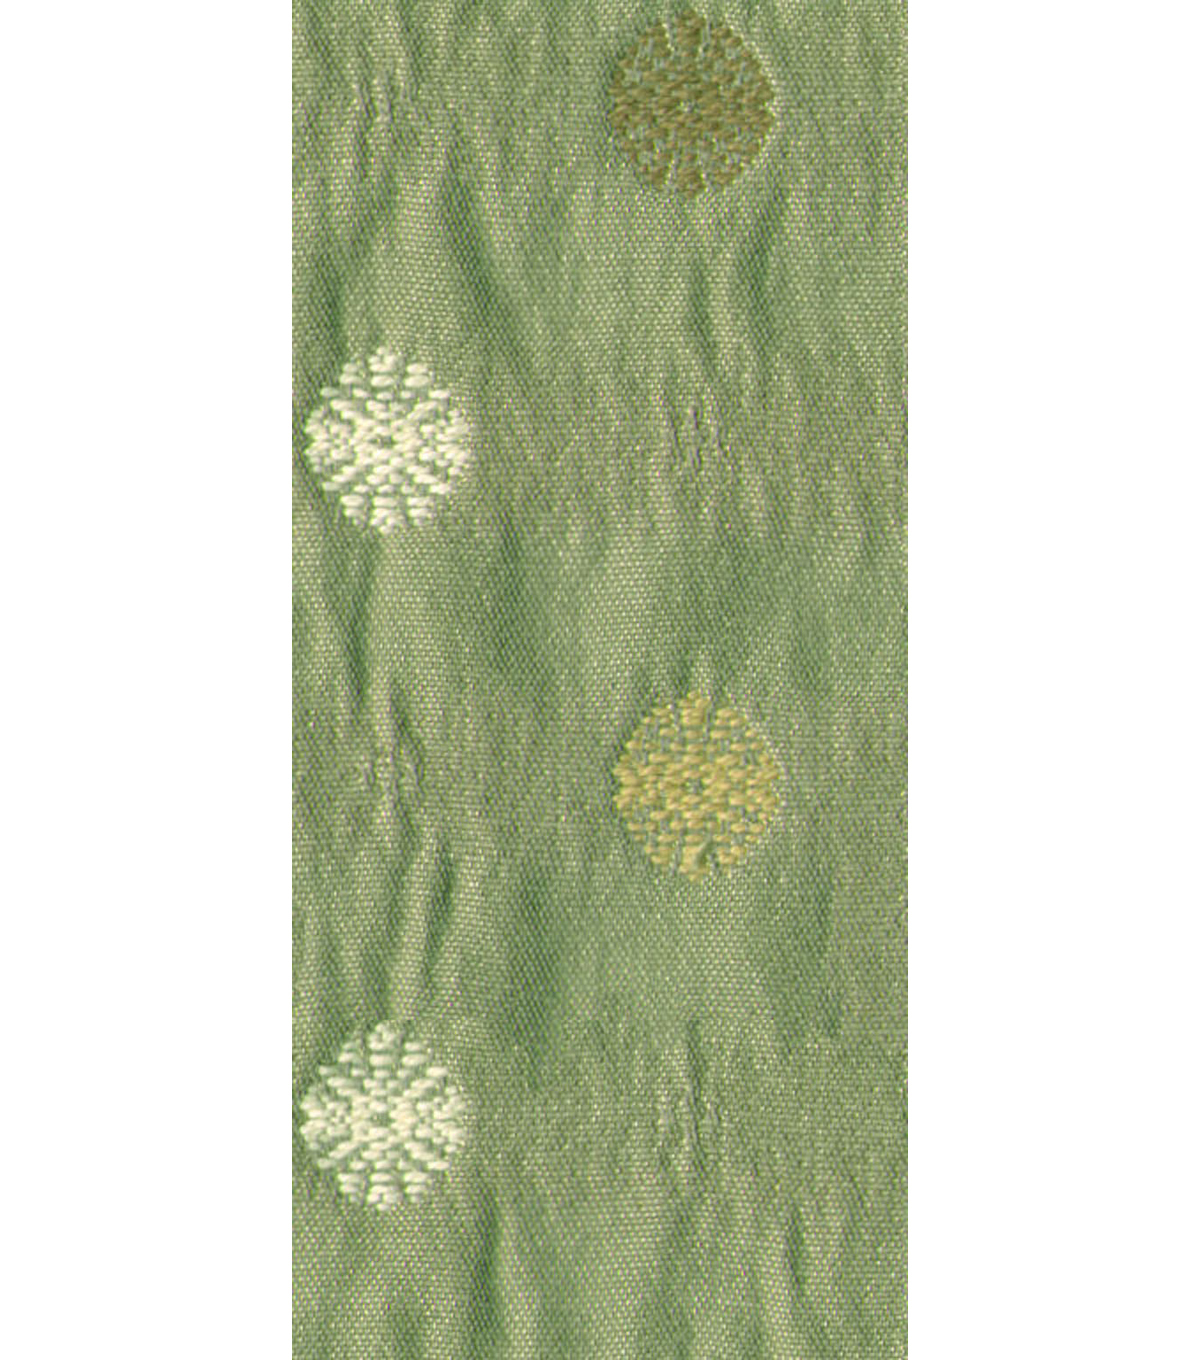 Home Decor 8\u0022x8\u0022 Fabric Swatch-Barrow M7481 5687 Grotto